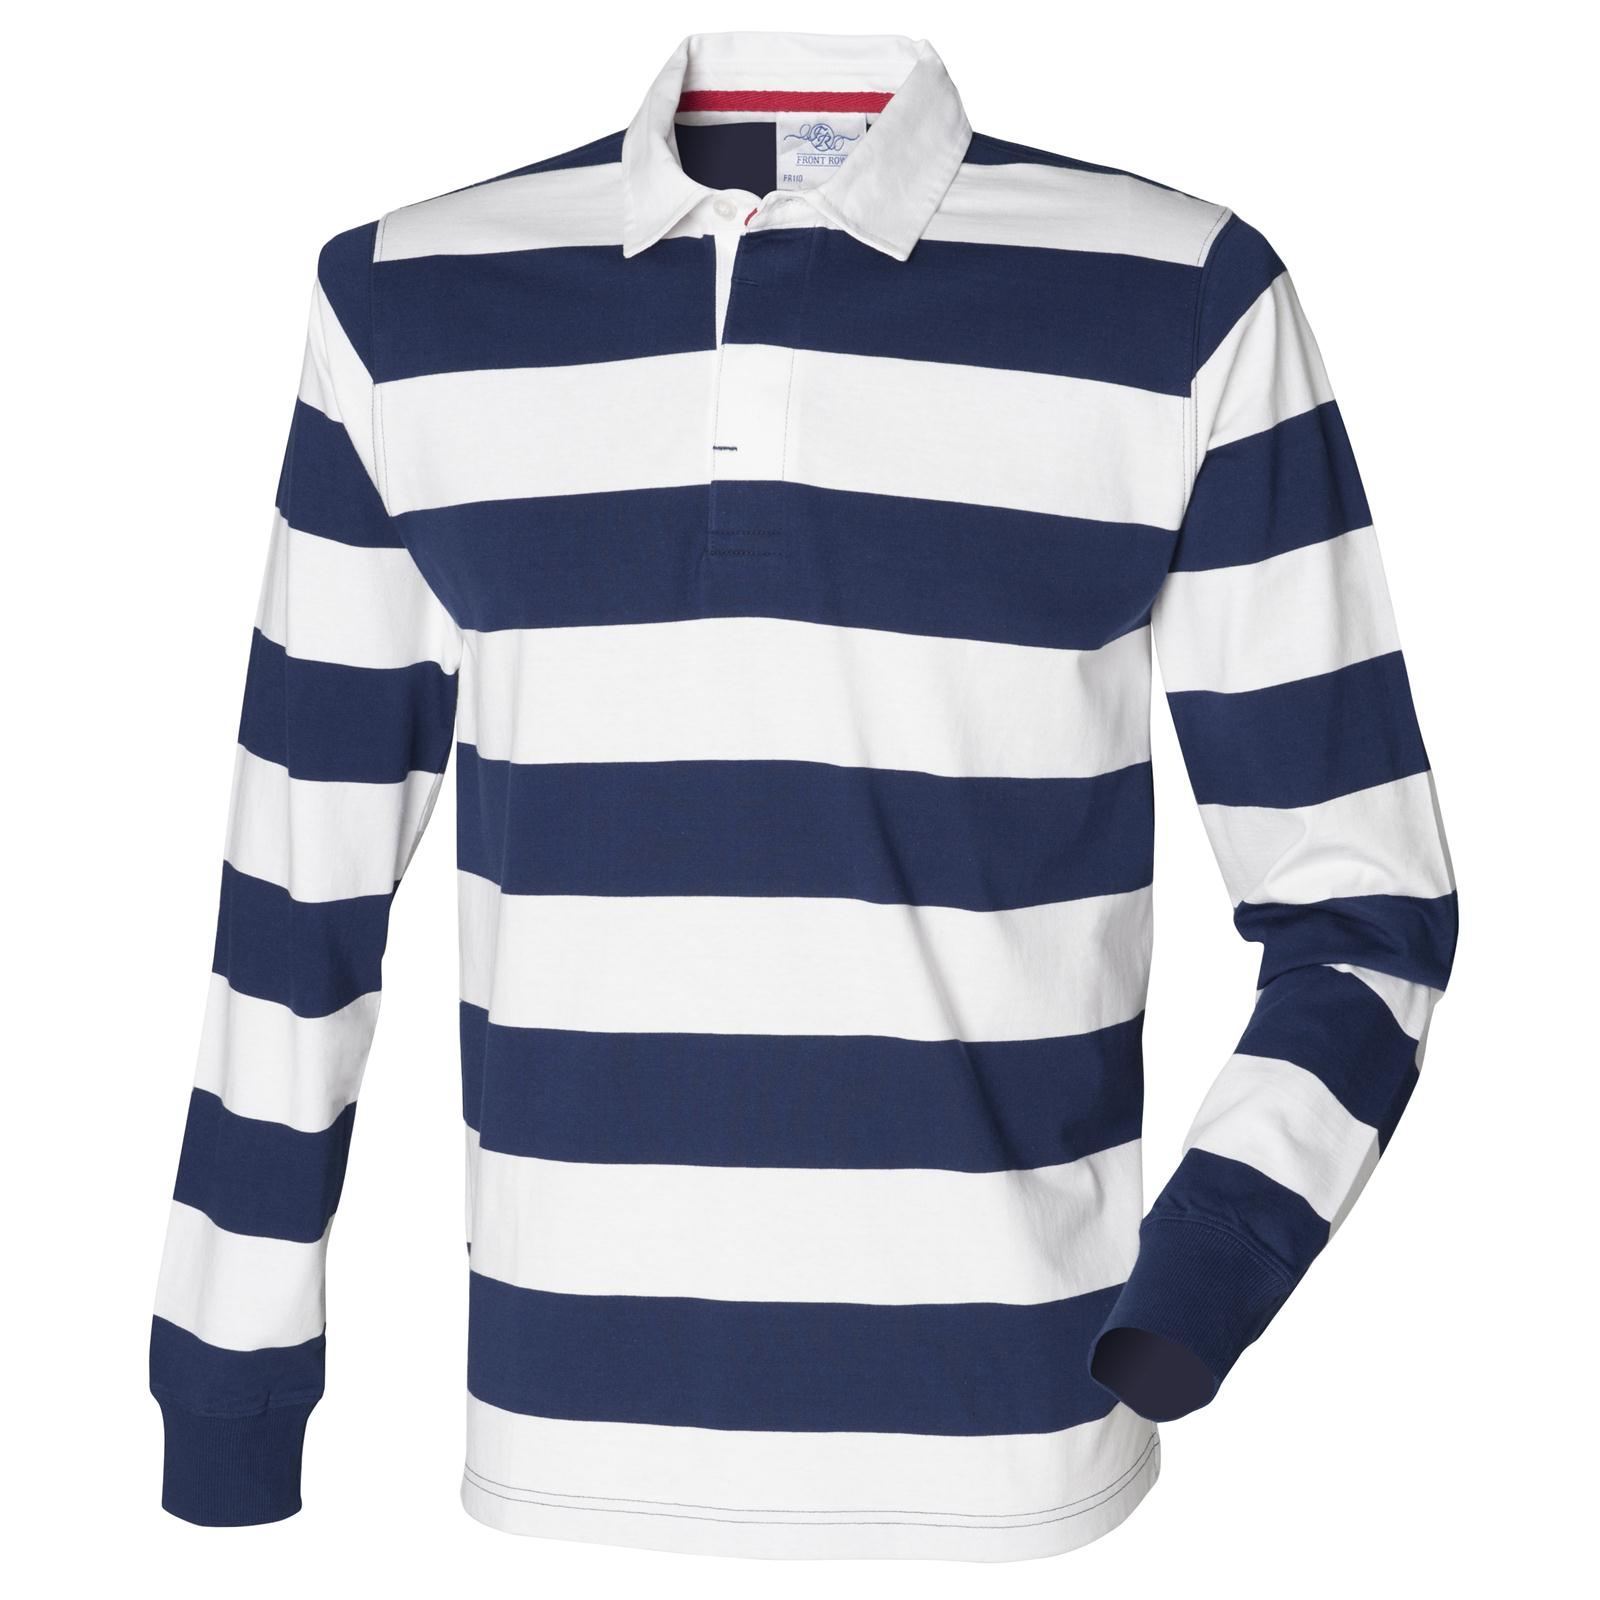 Want comfortable and stylish rugby shirts to wear off the pitch? Rhino Rugby has a great collection of rugby tops perfect for wearing down the pub.